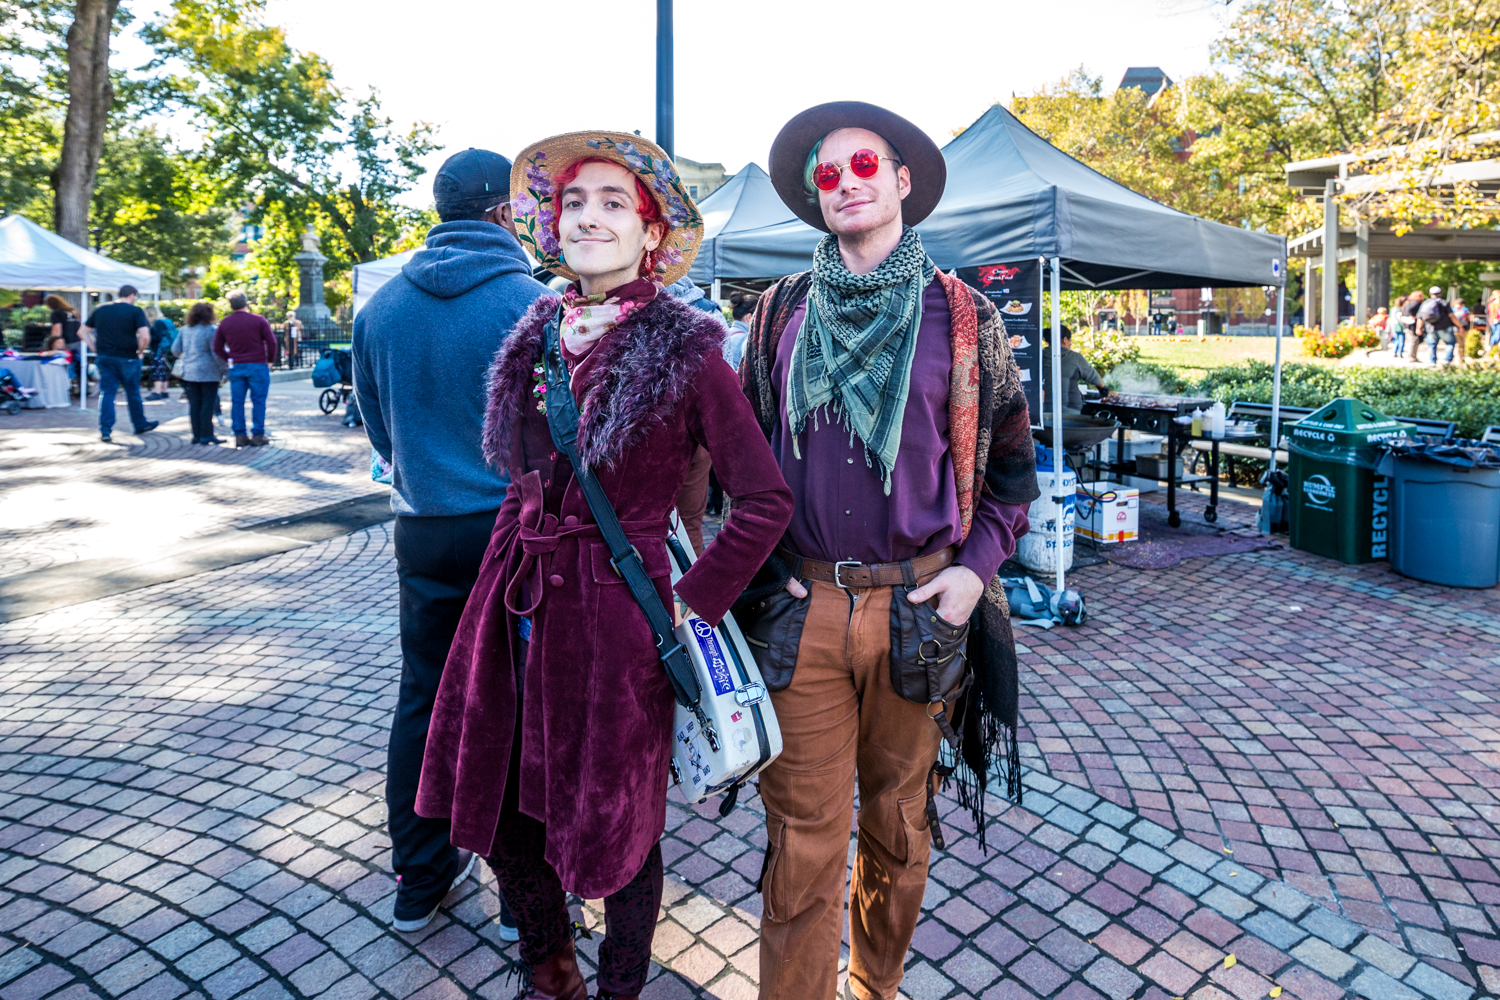 Corwin Zekley and Jay Drapes of Snaps for Sinners at Fall Fest in Washington Park / Image: Catherine Viox // Published: 11.1.19